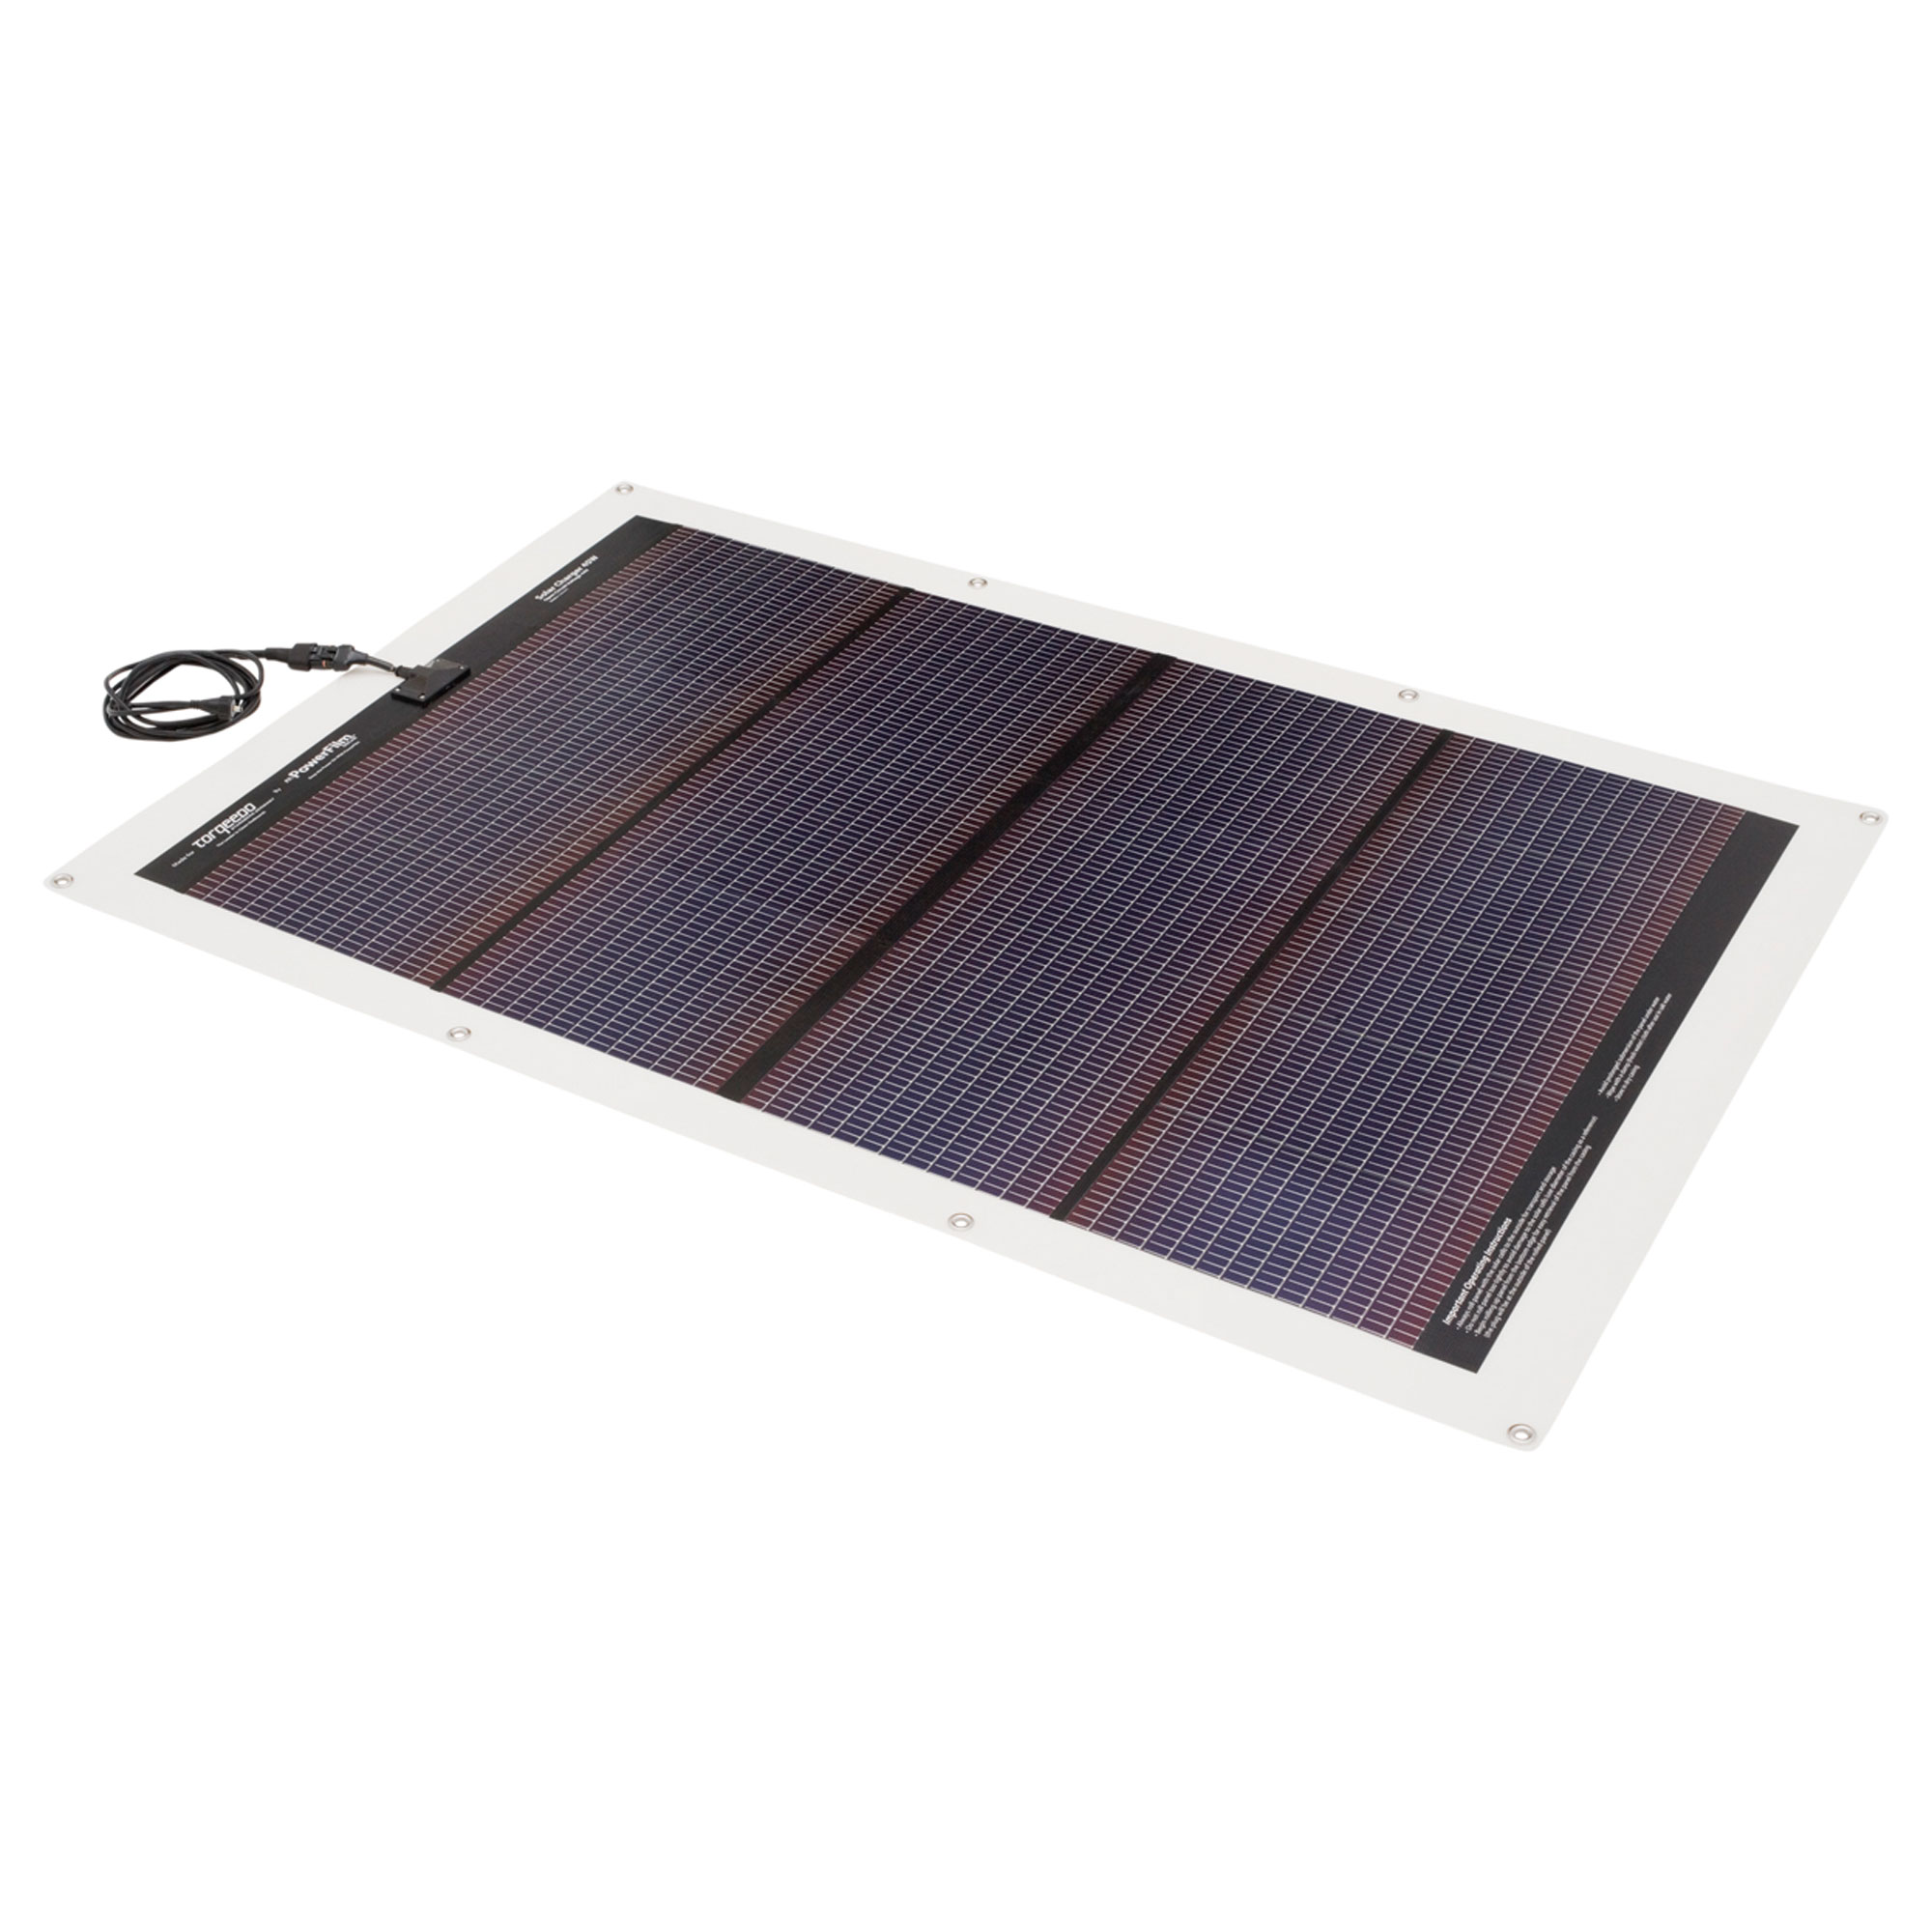 Chargeur solaire 45 w torqeedo for Panneau solaire plug and play